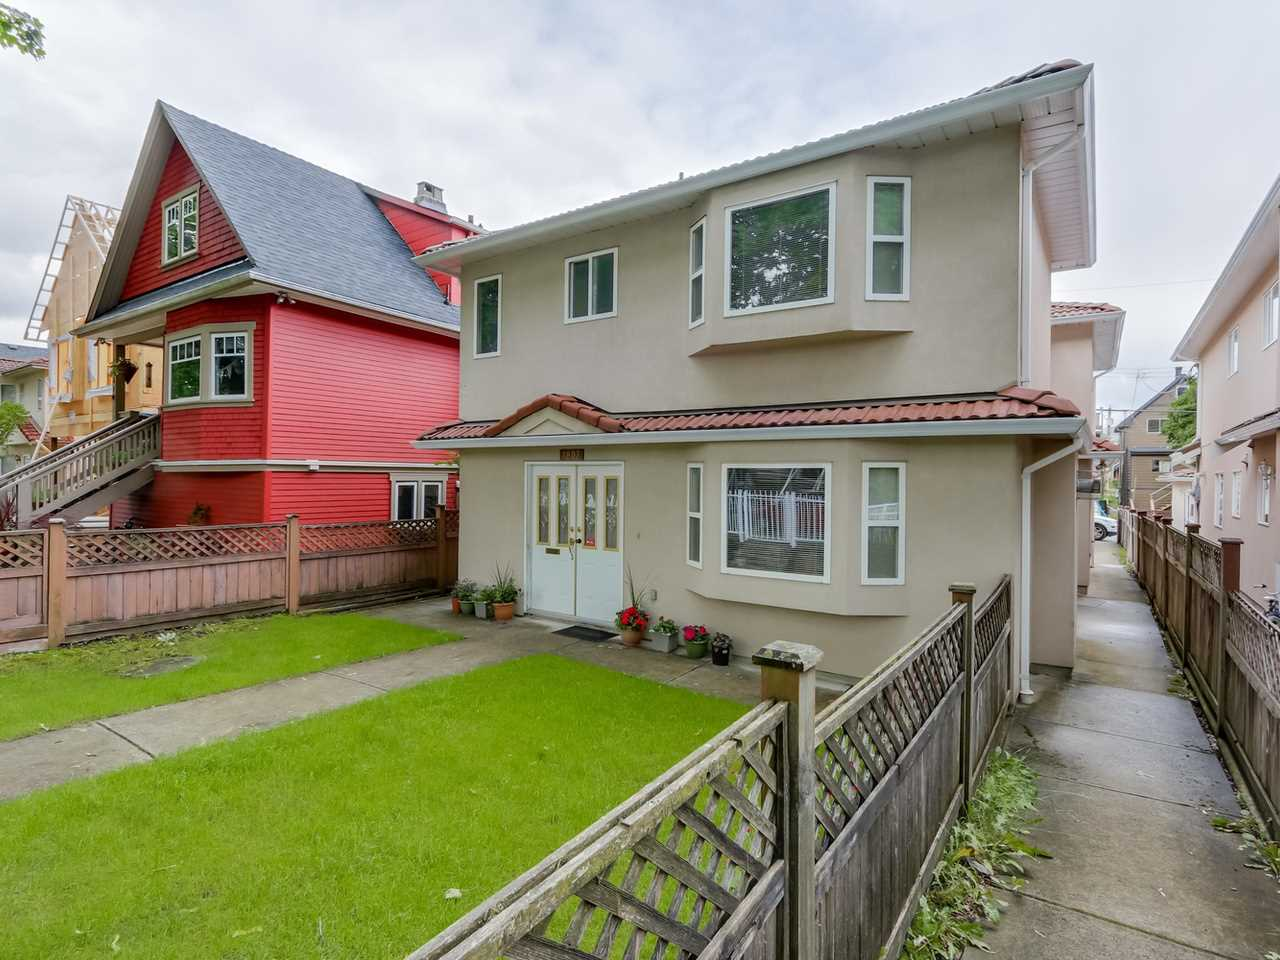 Main Photo: 1809 E 13TH AVENUE in Vancouver: Grandview VE House 1/2 Duplex for sale (Vancouver East)  : MLS(r) # R2081269